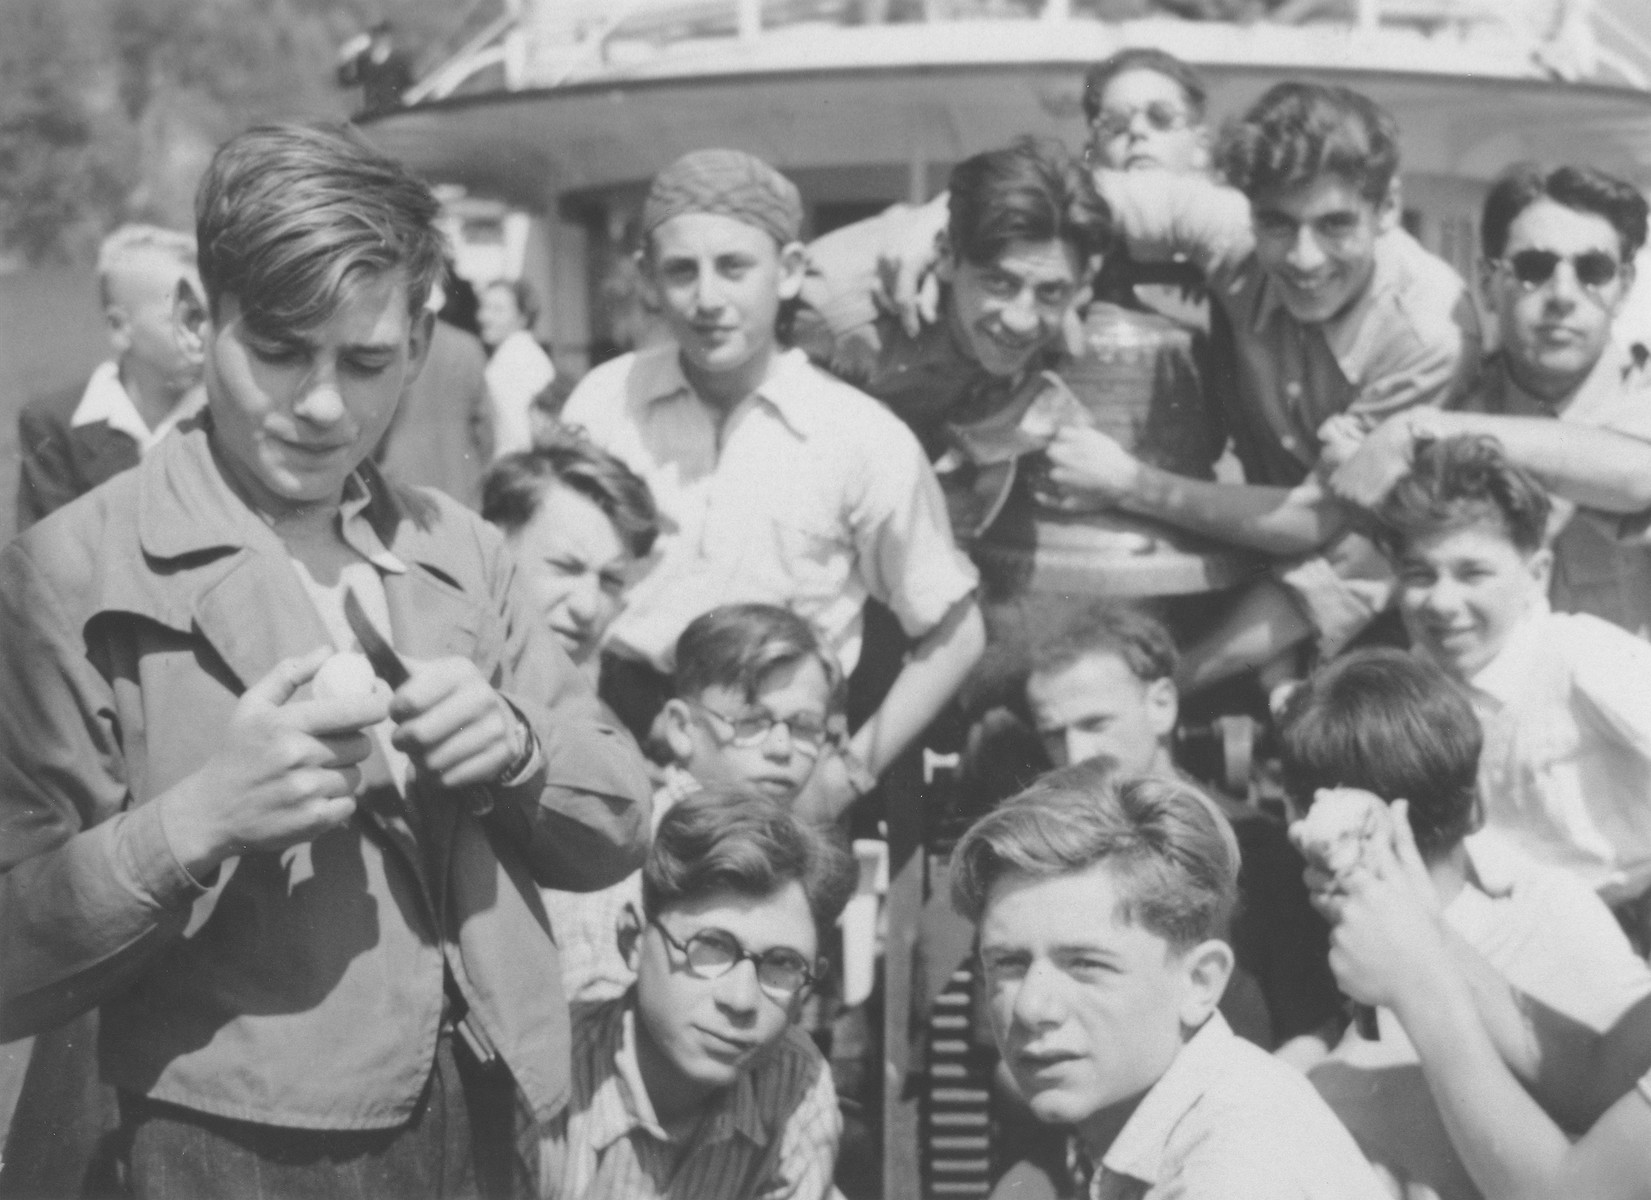 """Boys from the Hôme de la Forêt children's home on a summer boat excursion.  Among those pictured are Victor Grabsztok, Norbert Bikales, Simon Blass, Henri Karnowski, """"Bomba"""" Meyer and """"Jukoff"""".  Back row, second from the right  is Rudoph's brother."""